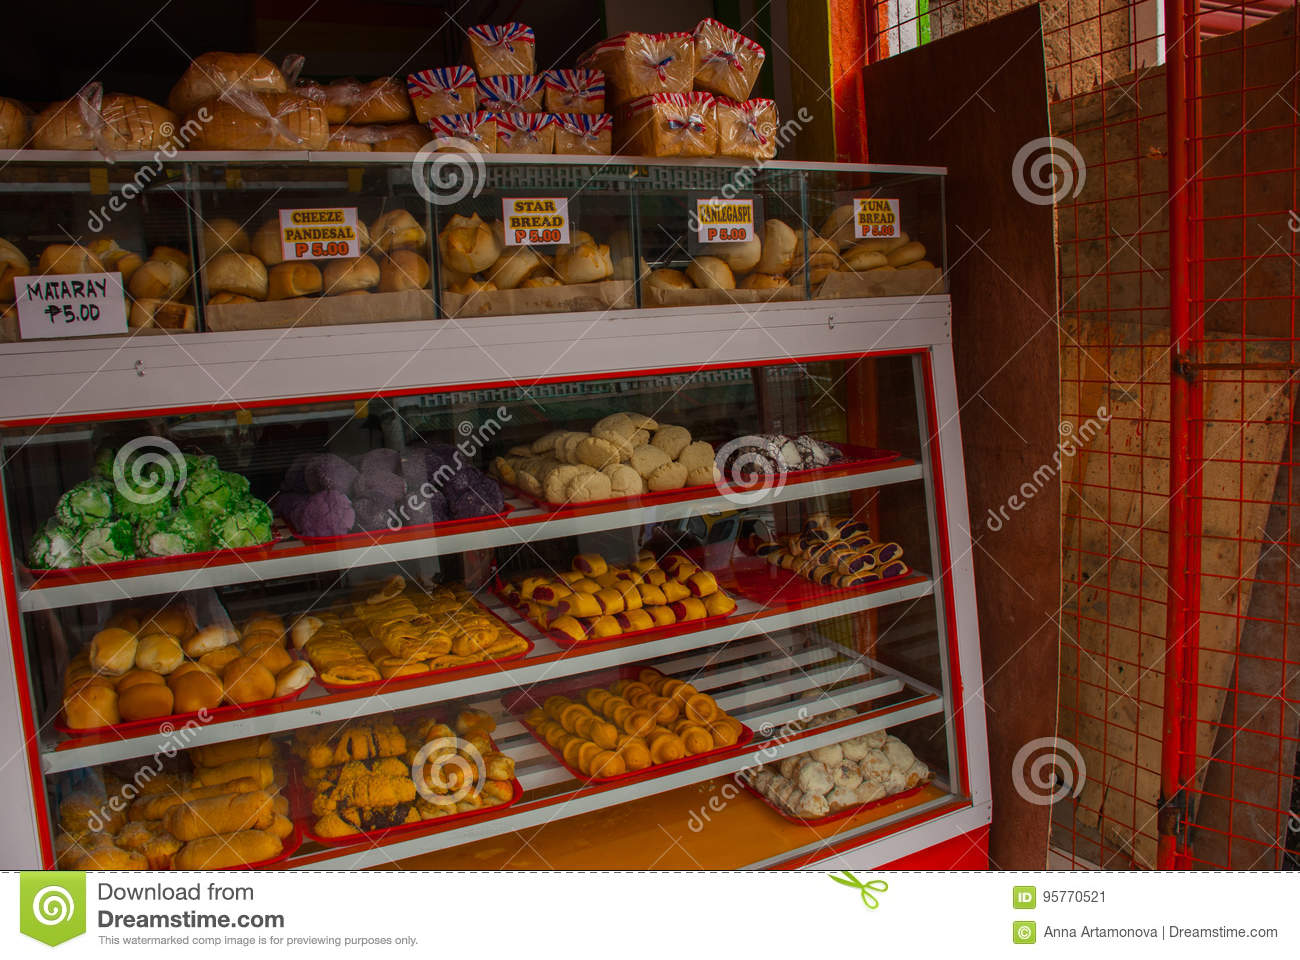 Display window of a bakery and pastry shop of with variety of baked goods, breads, donuts, puff pastry, closeup. Philippines.